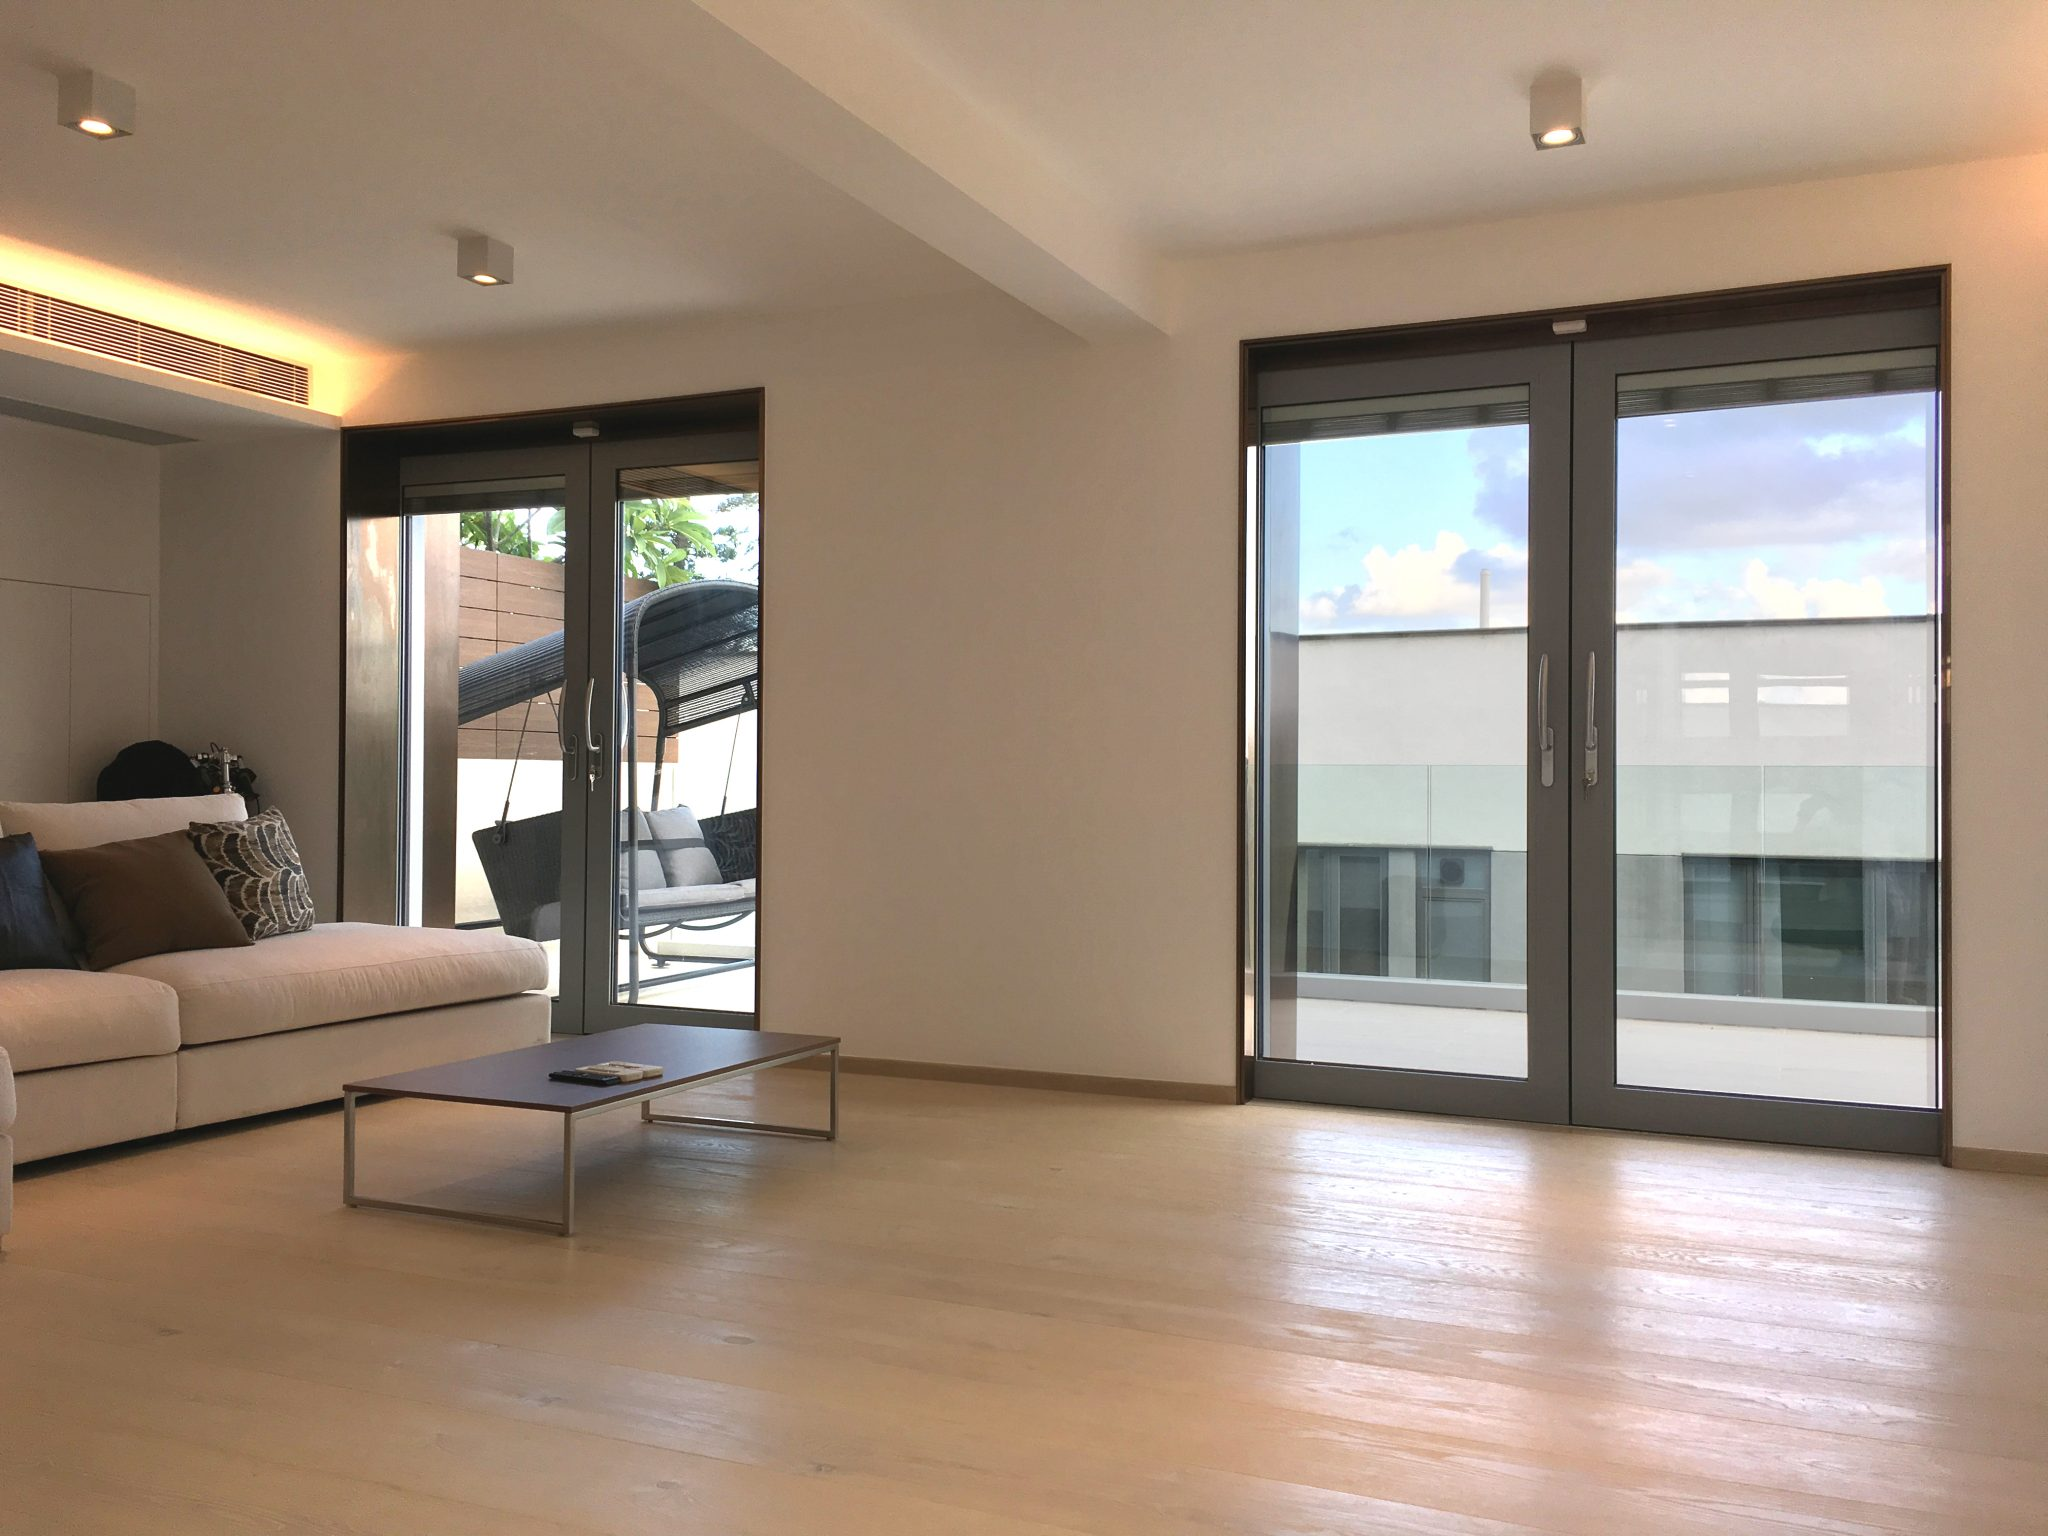 Two sets of aluminum pocket sliding doors open up to an expansive balcony